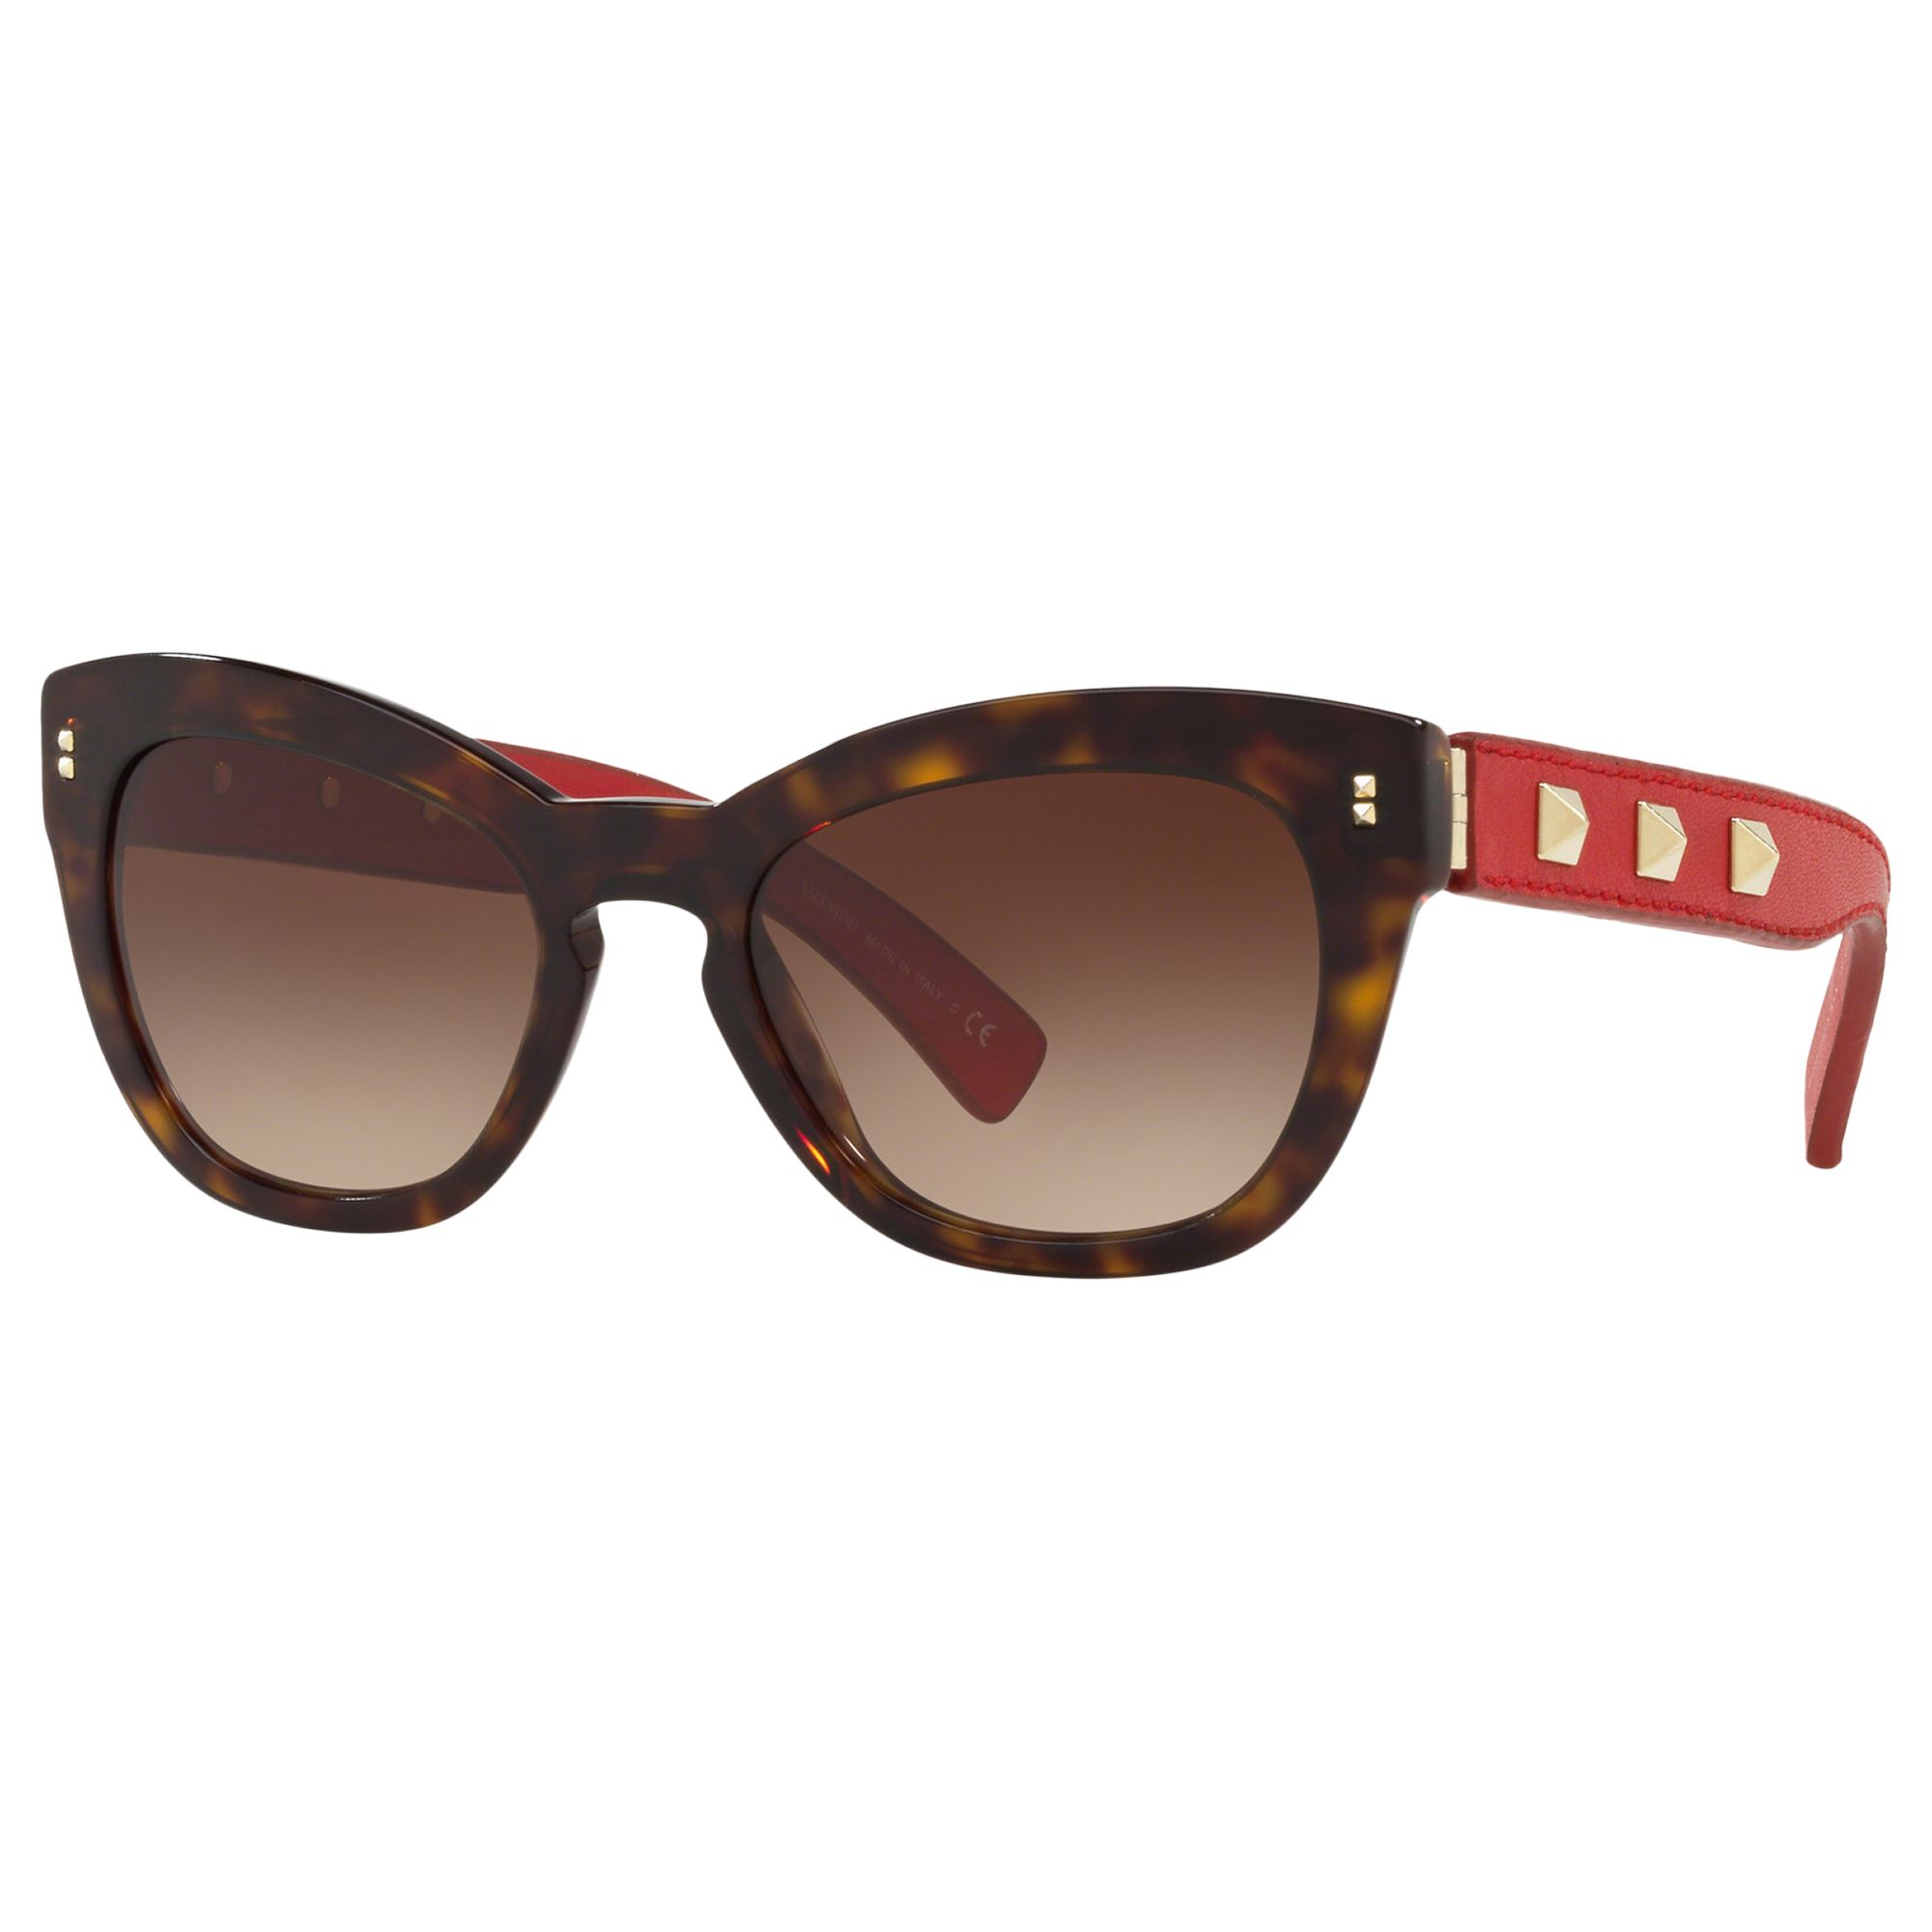 Valentino Valentino VA4037 Women's Studded Leather Frame Cat's Eye Sunglasses, Tortoise Red/Brown Gradient